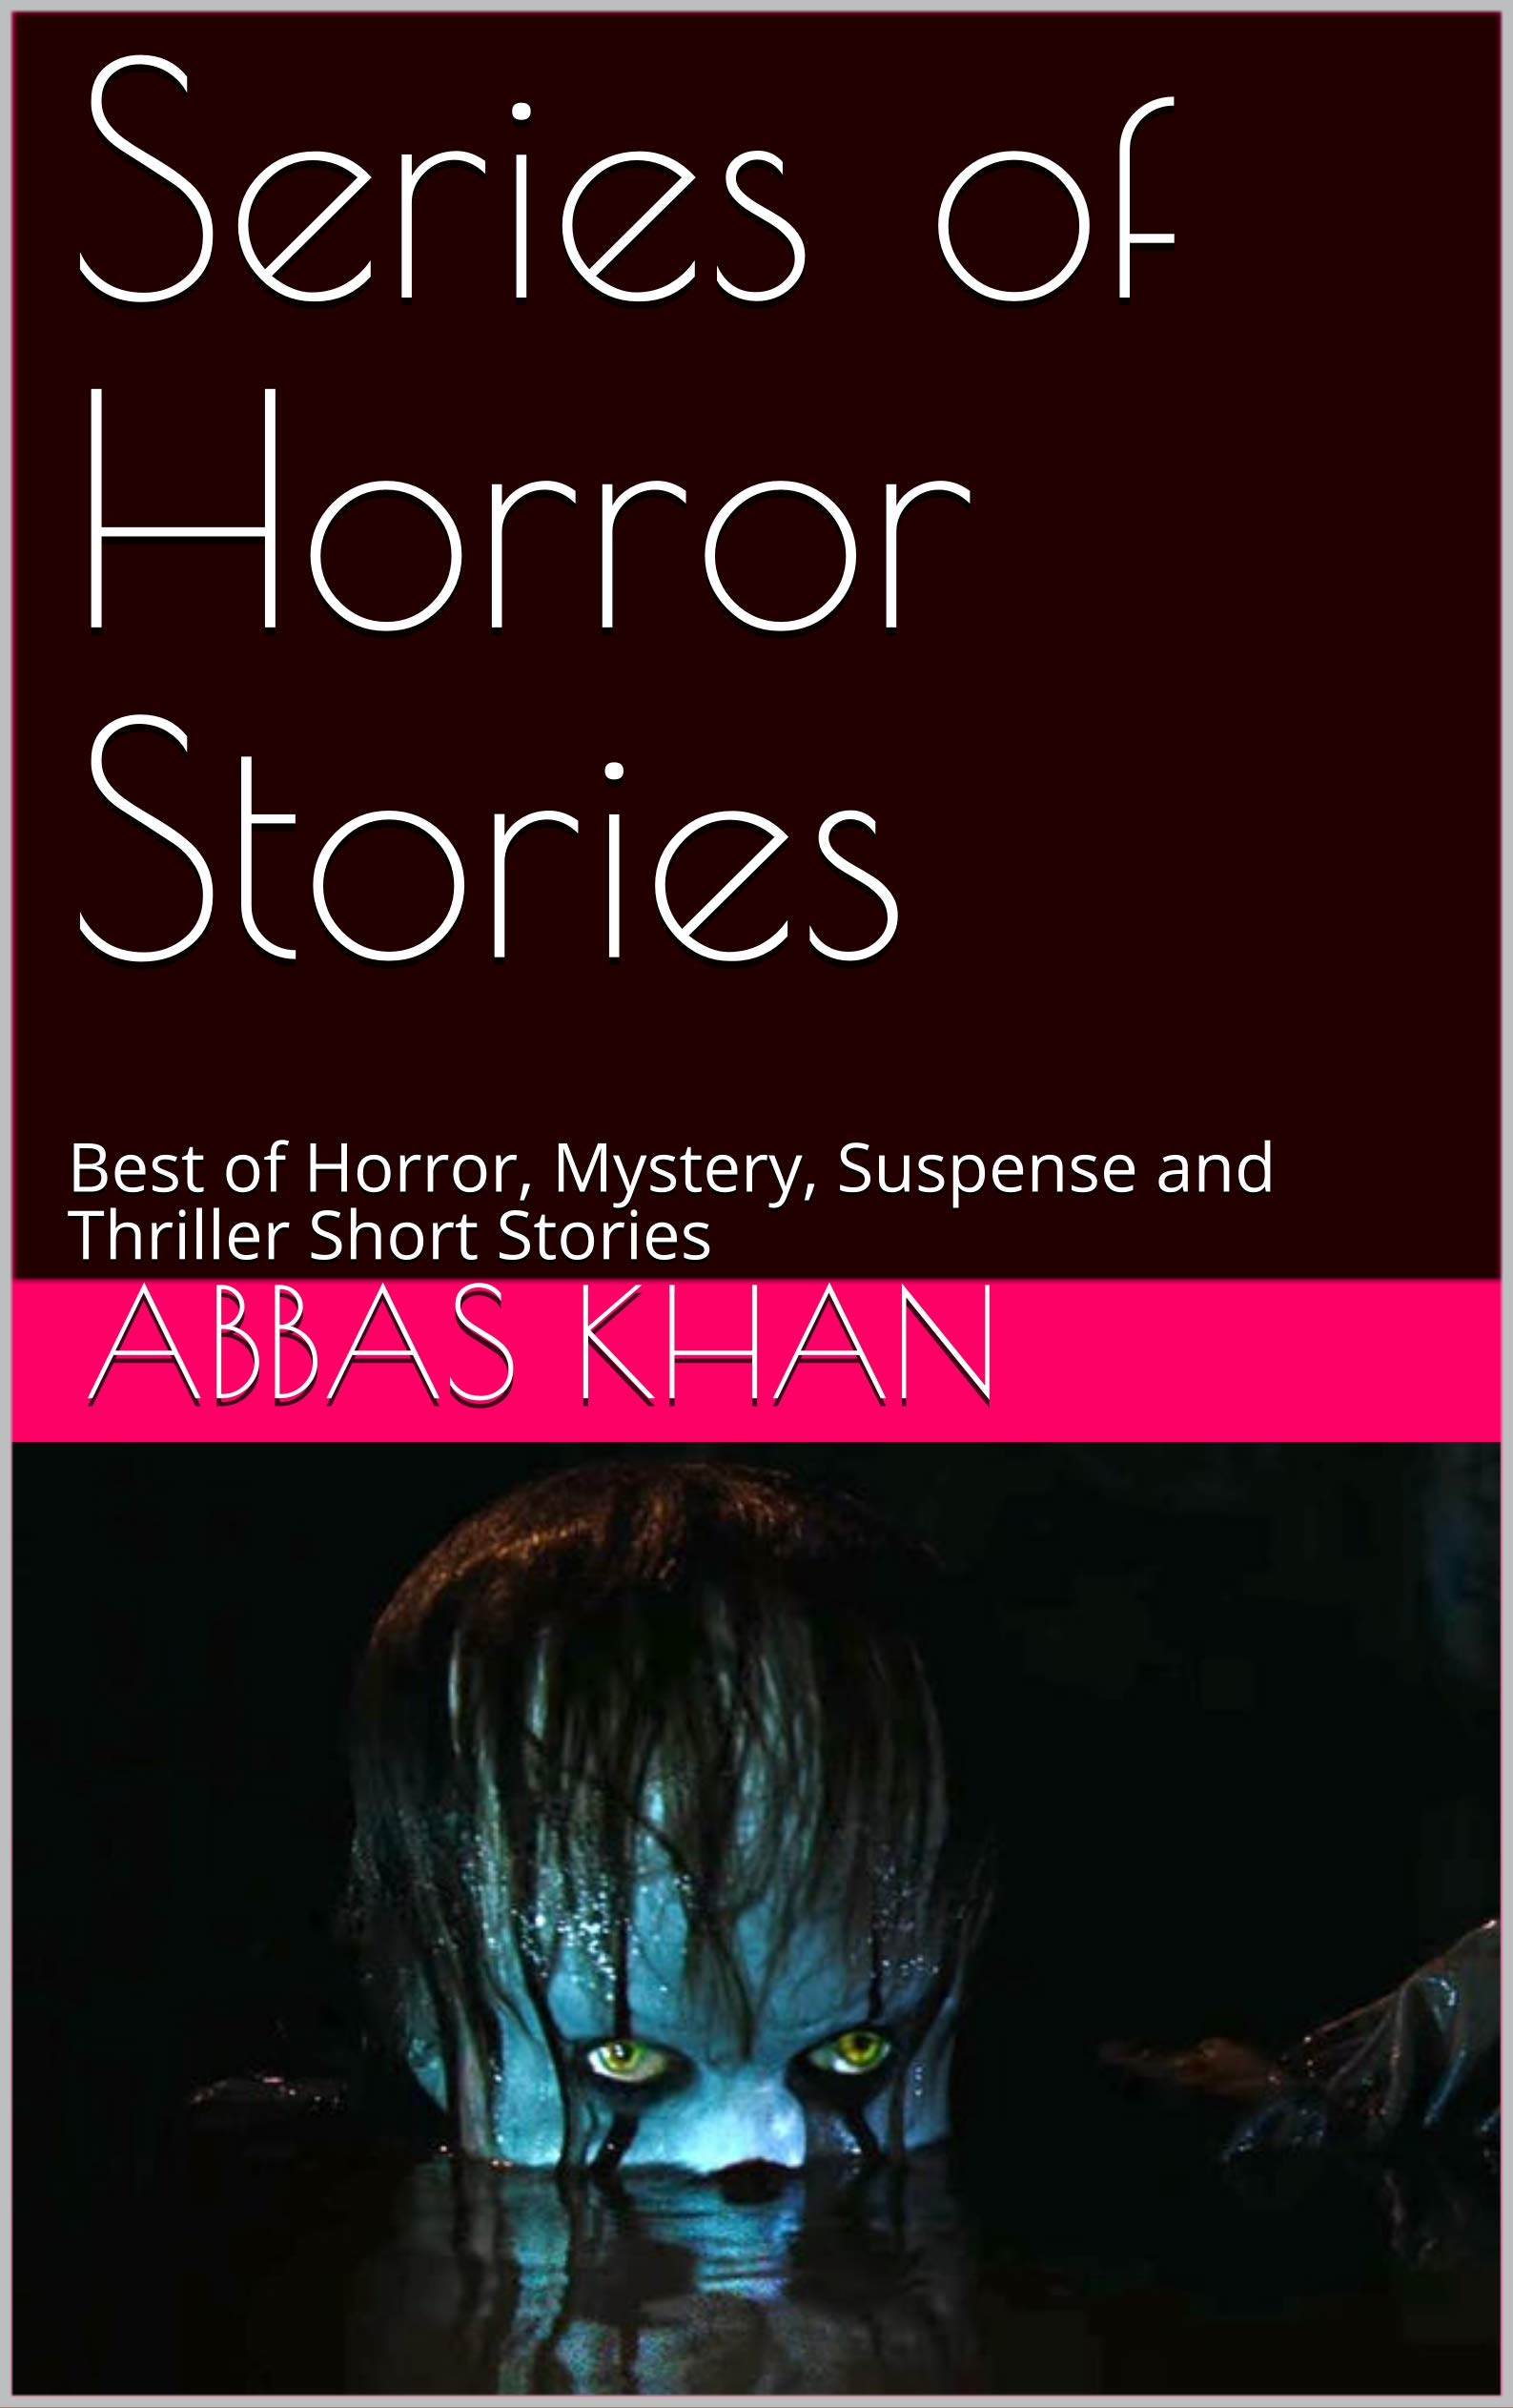 Series of Horror Stories : Best of Horror, Mystery, Suspense and Thriller Short Stories